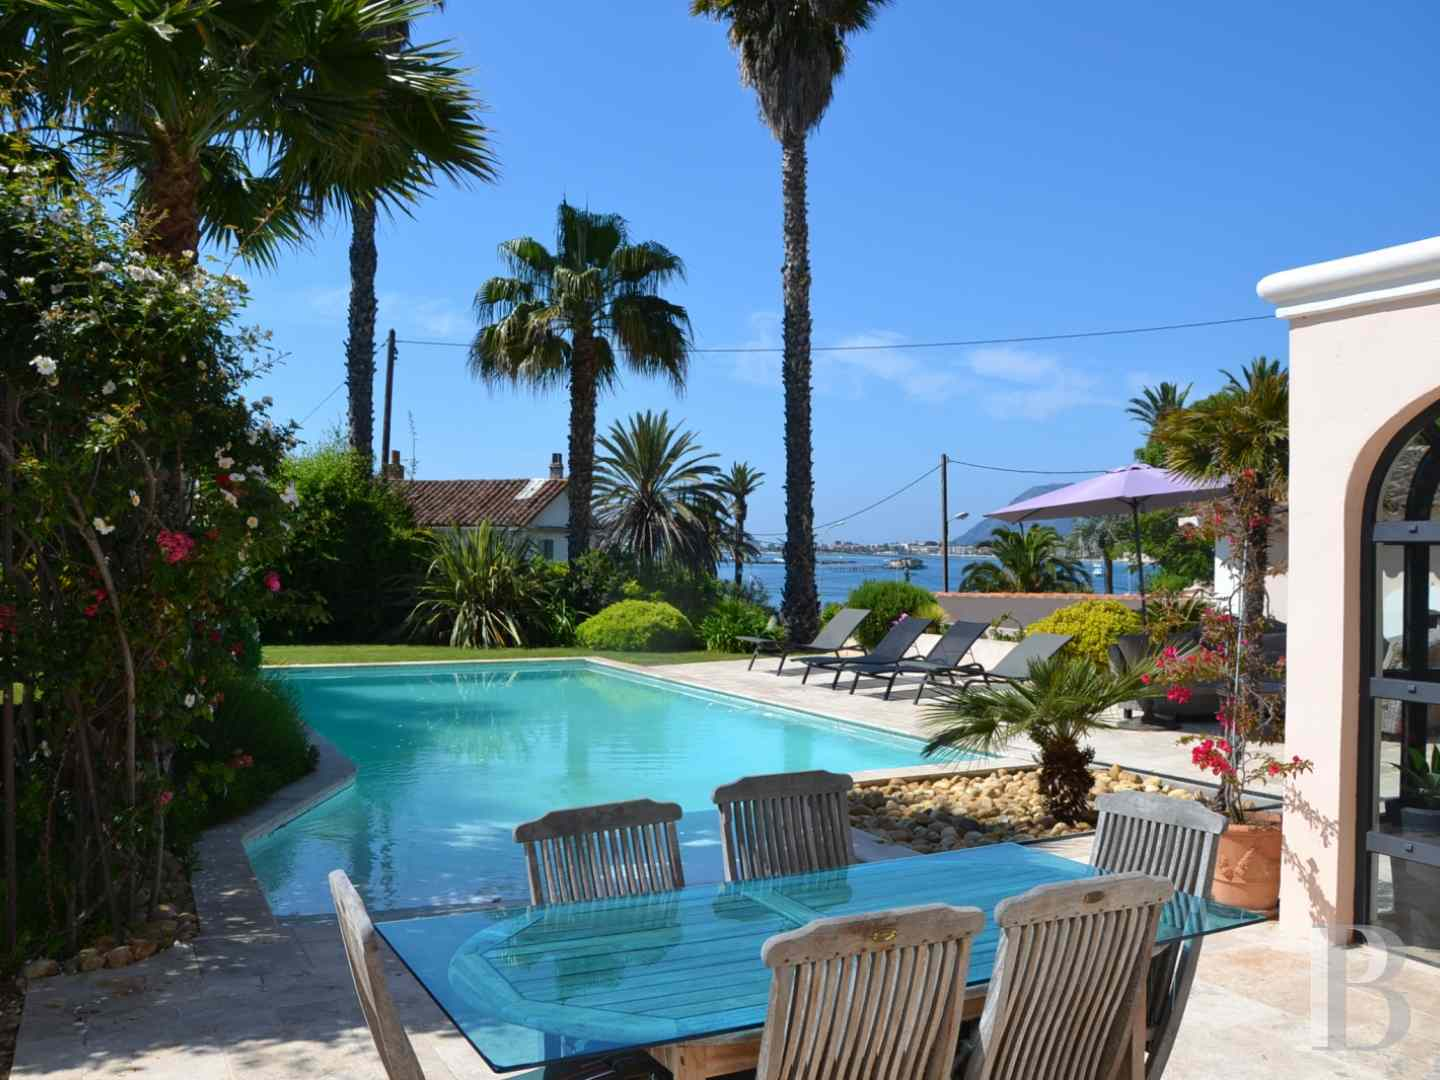 property for sale France provence cote dazur residences 20th - 1 zoom